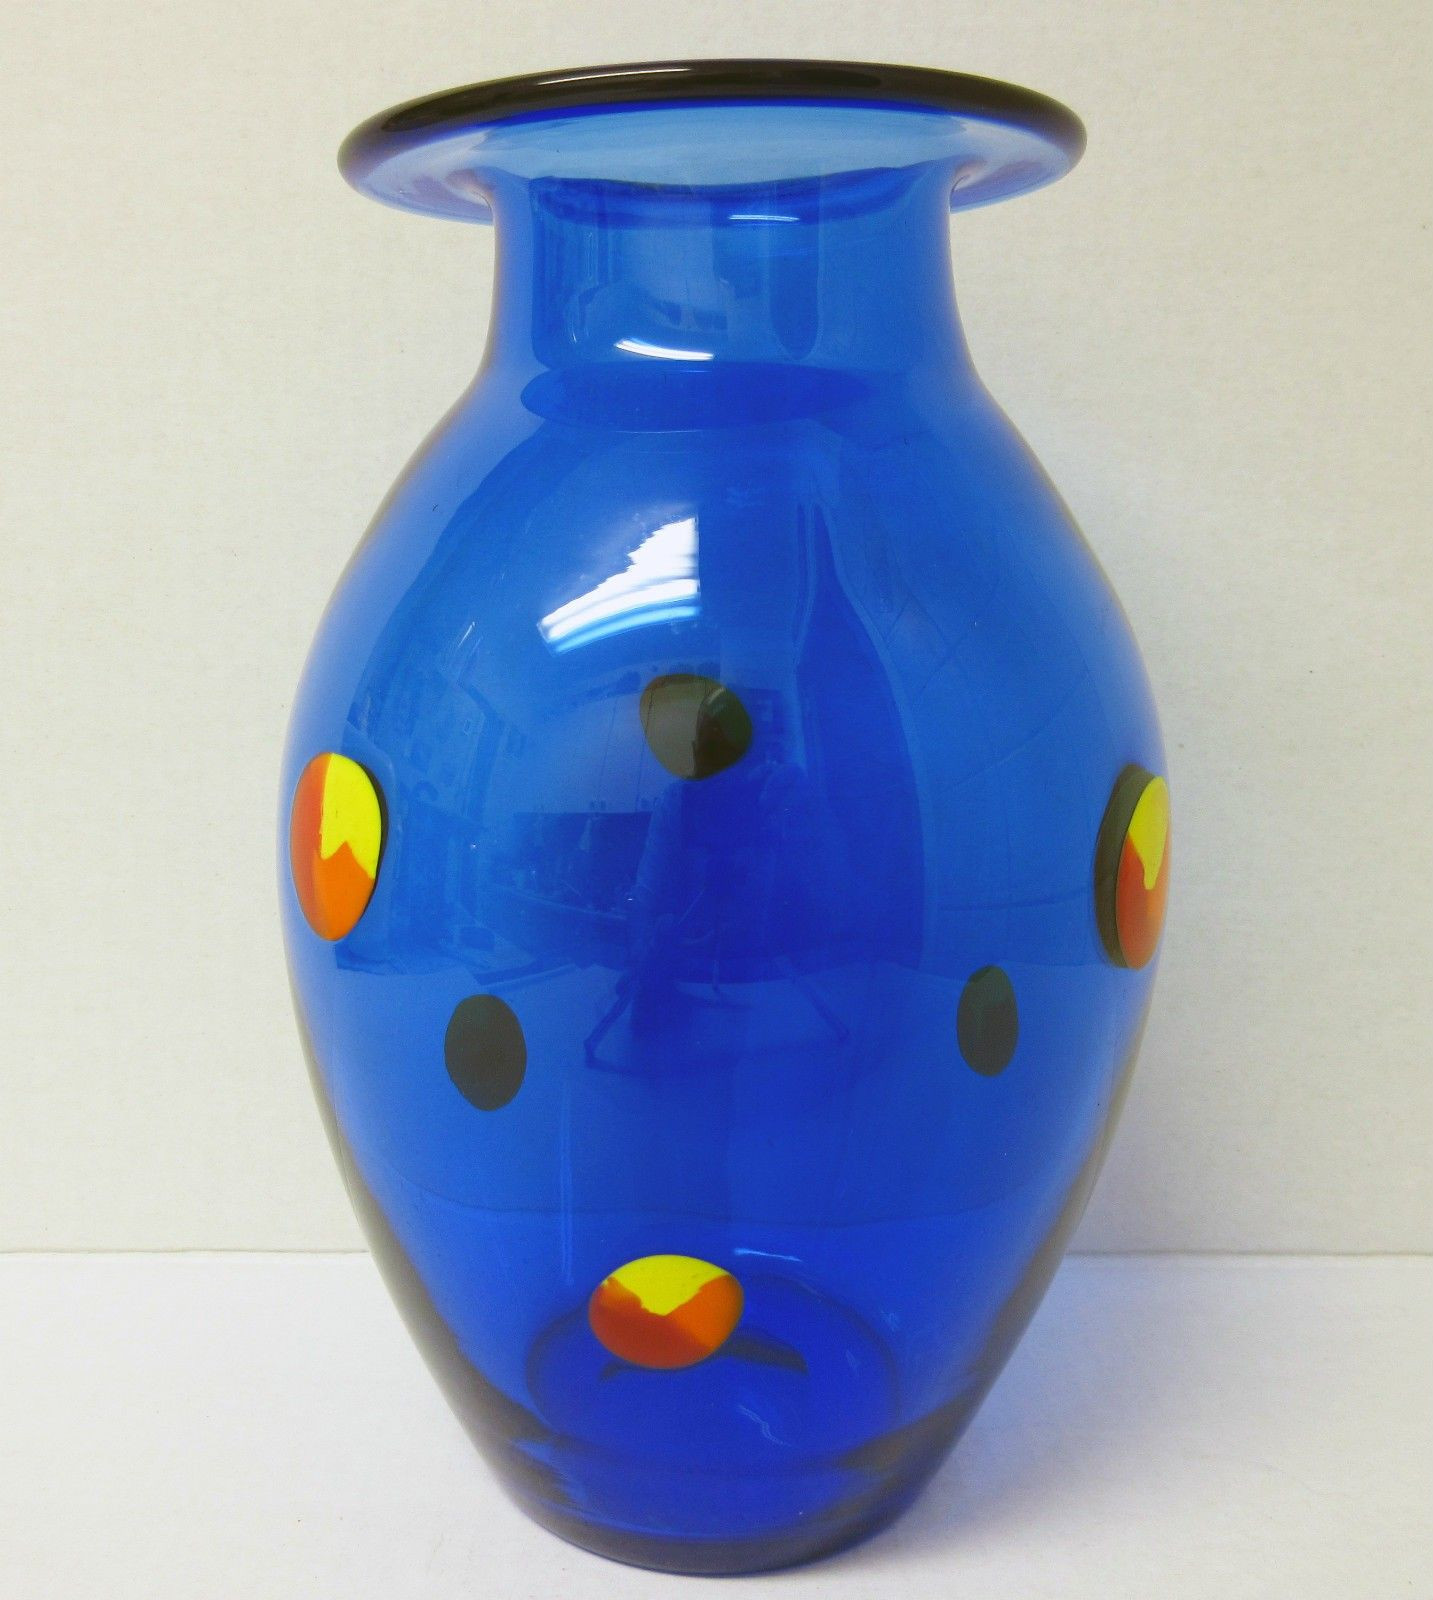 multi colored glass vases of cobalt blue with multi color prunts orrefors sweden art glass vase with cobalt blue with multi color prunts orrefors sweden art glass vase measures approximately 8 1 2″ x 5″ sand blasted etched signature on the base